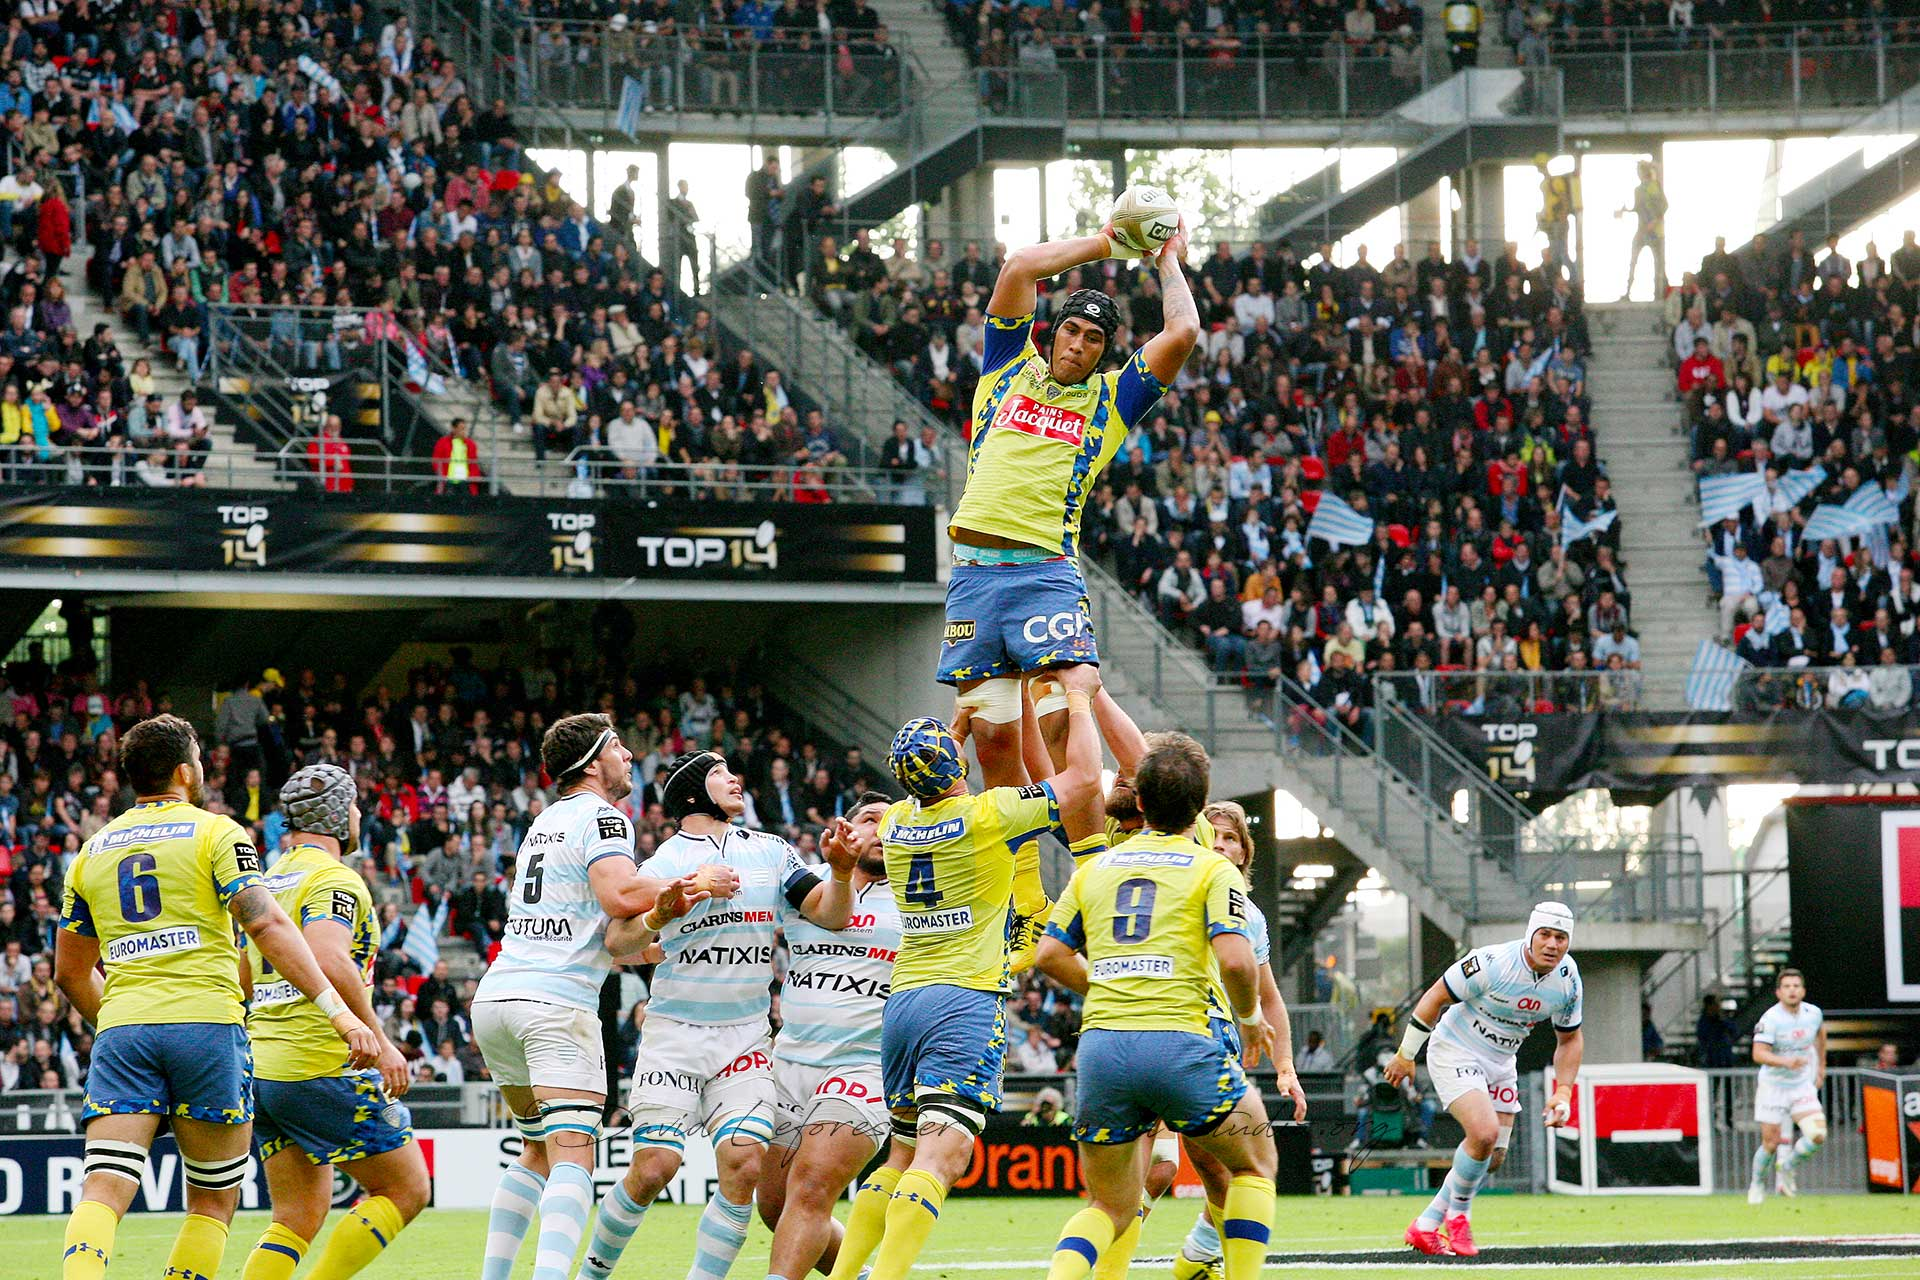 RUGBY TOP 14 : DEMI-FINALE (CLERMONT vs. RACING 92)